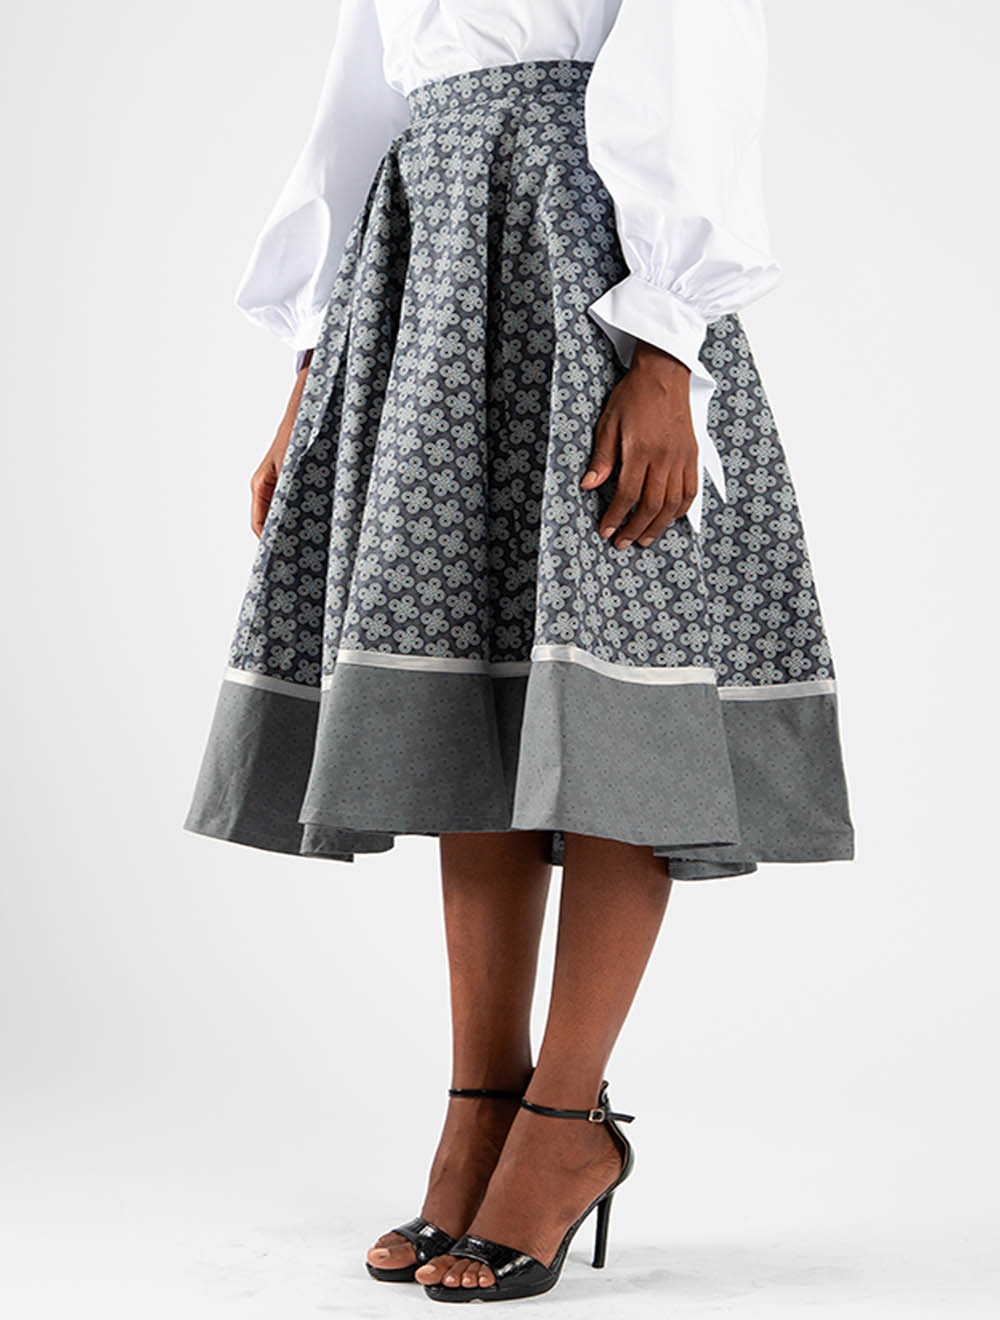 Ngwetsi skirt – Side